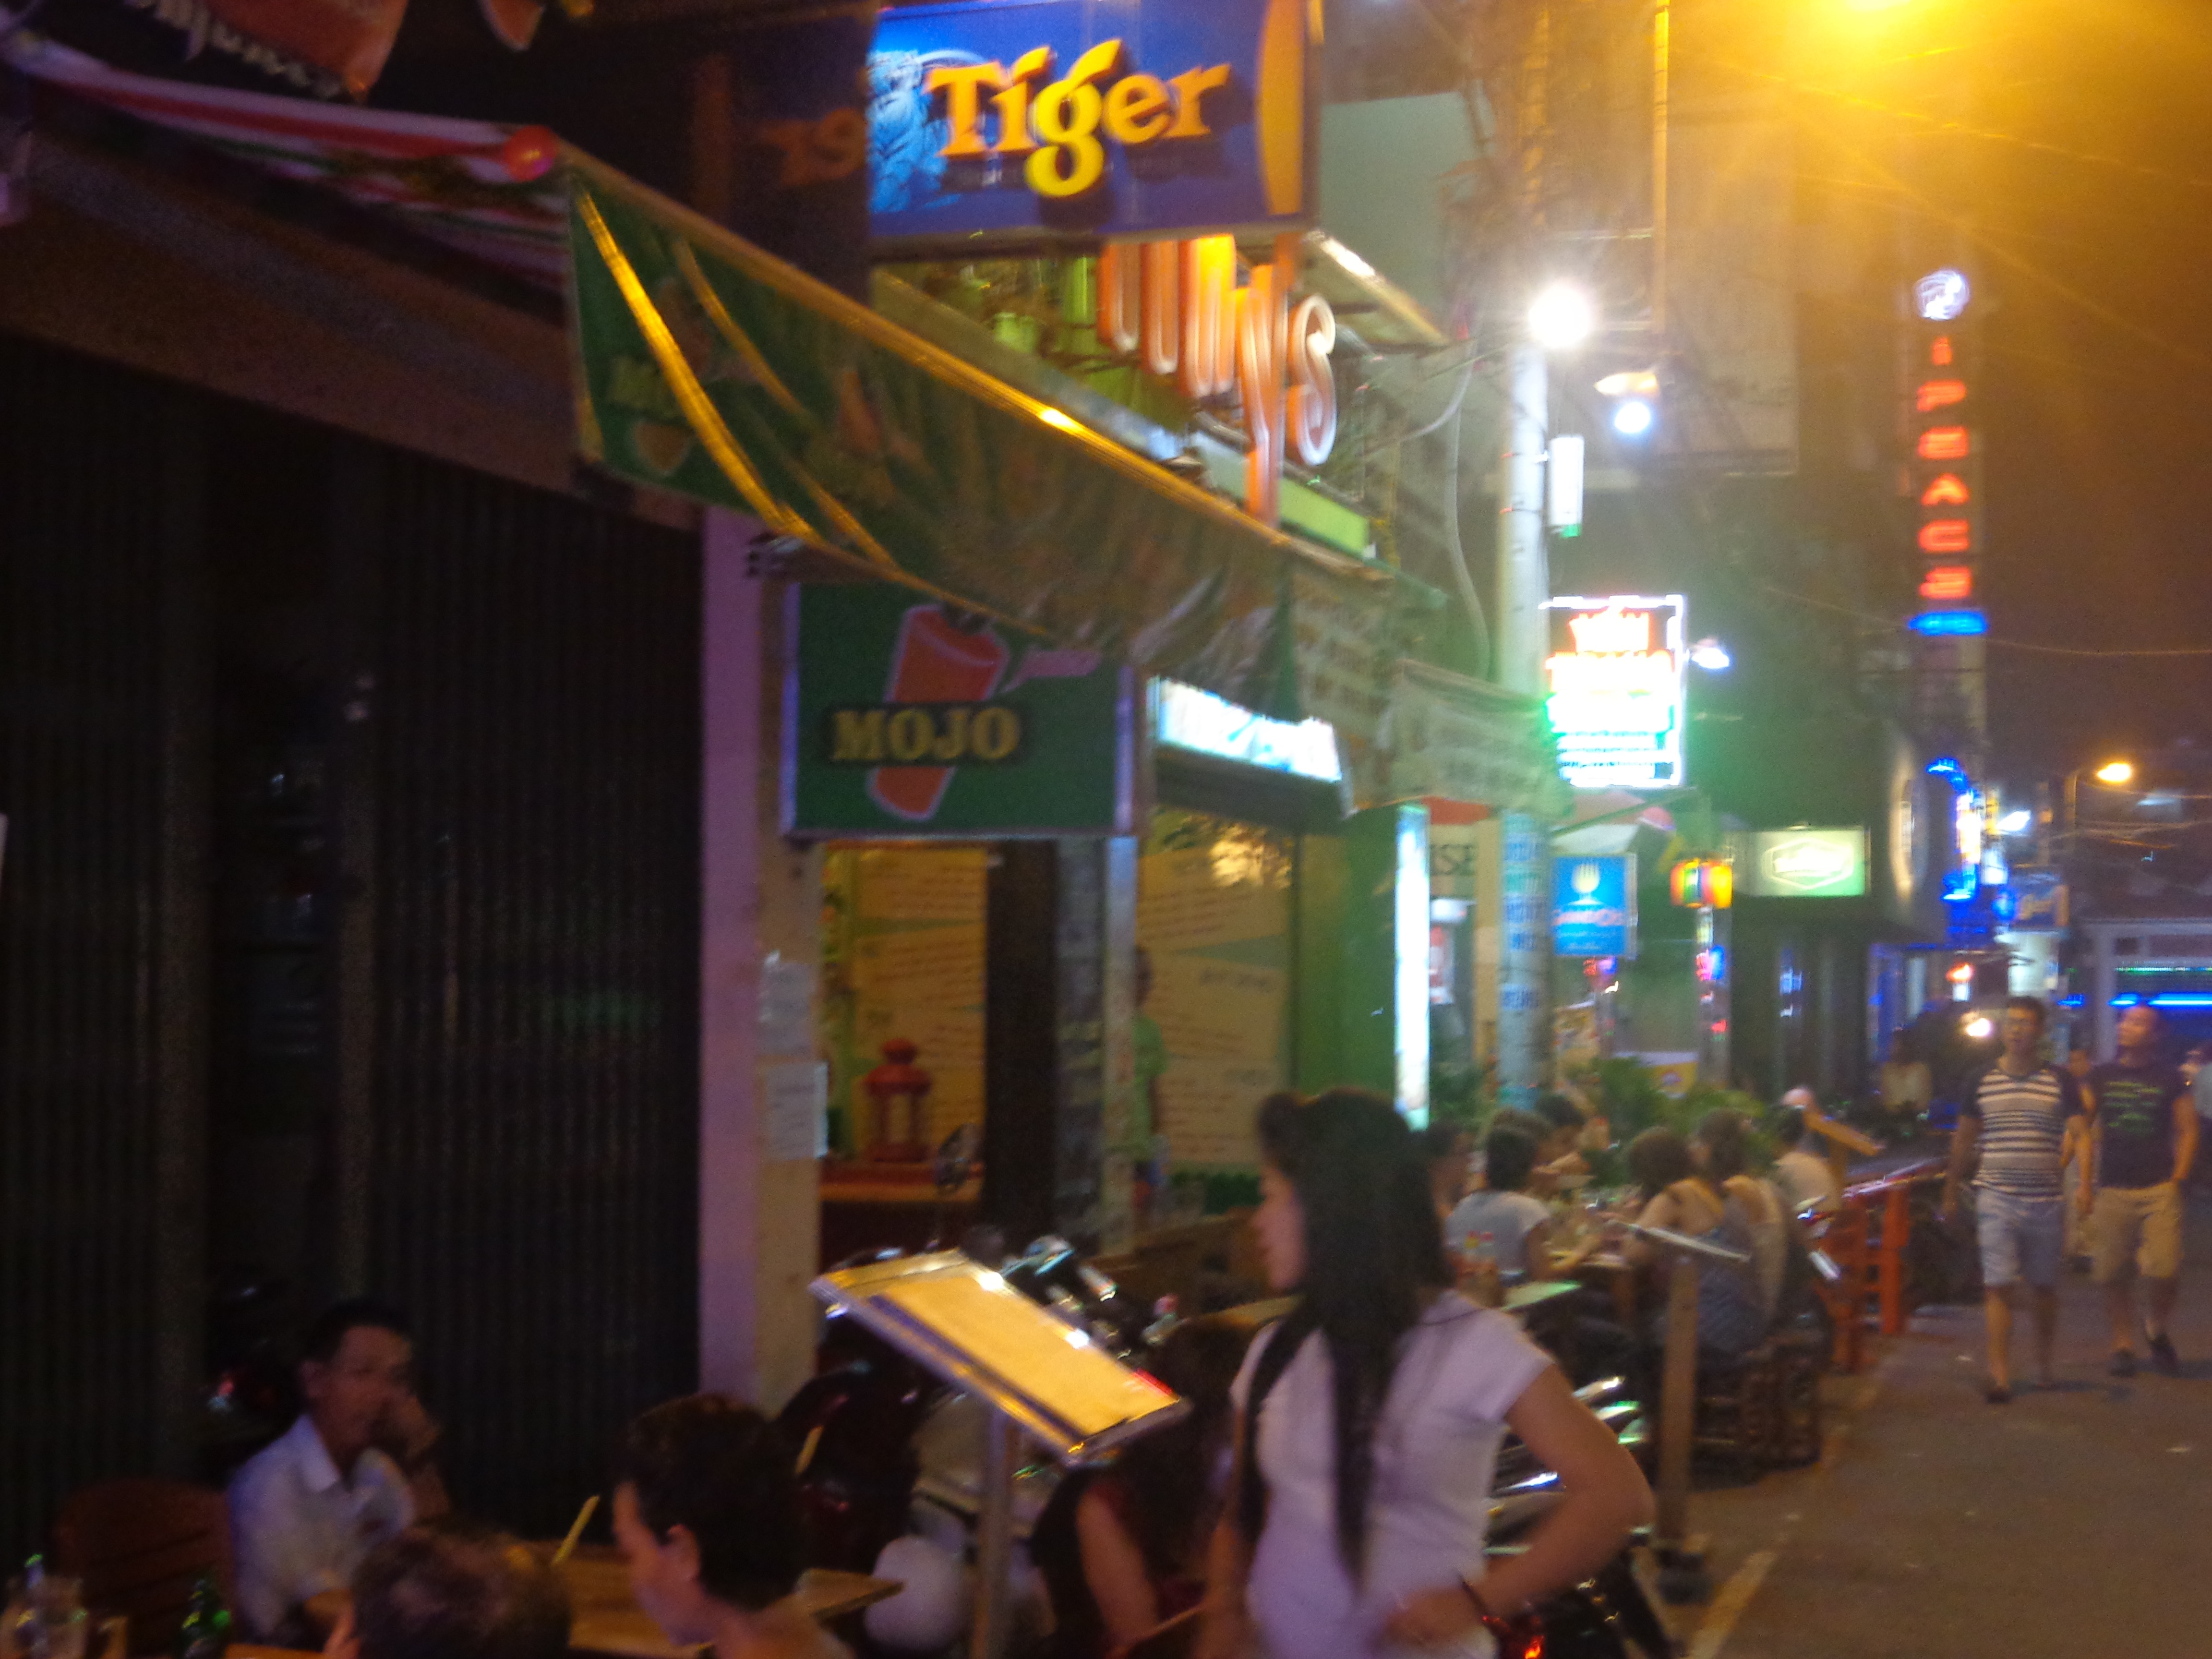 Tiny's restaurant on a street connecting Pham Ngu Lao and Bui Vien street.